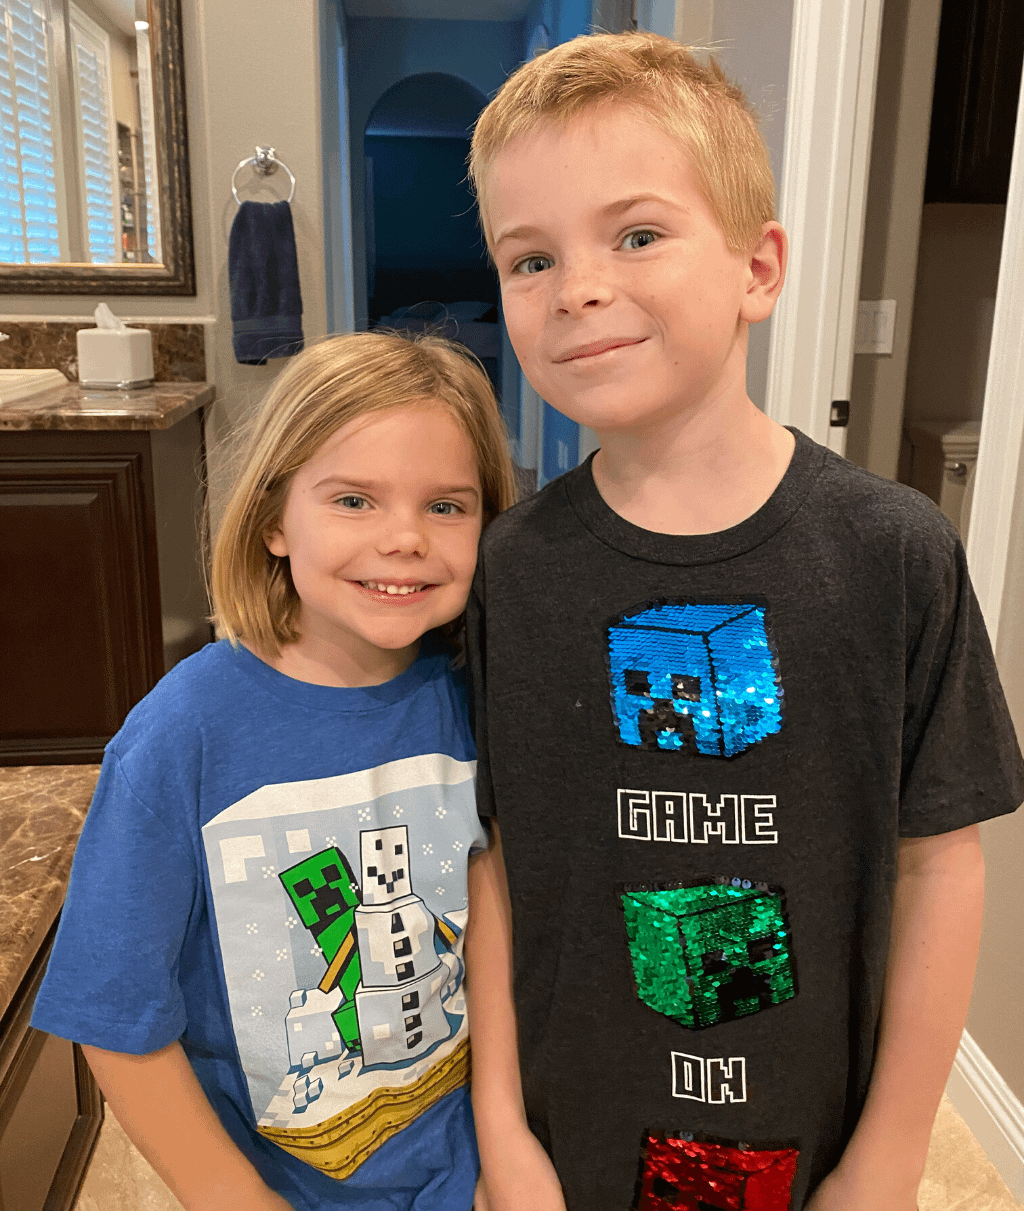 Minecraft shirts - brother and sister